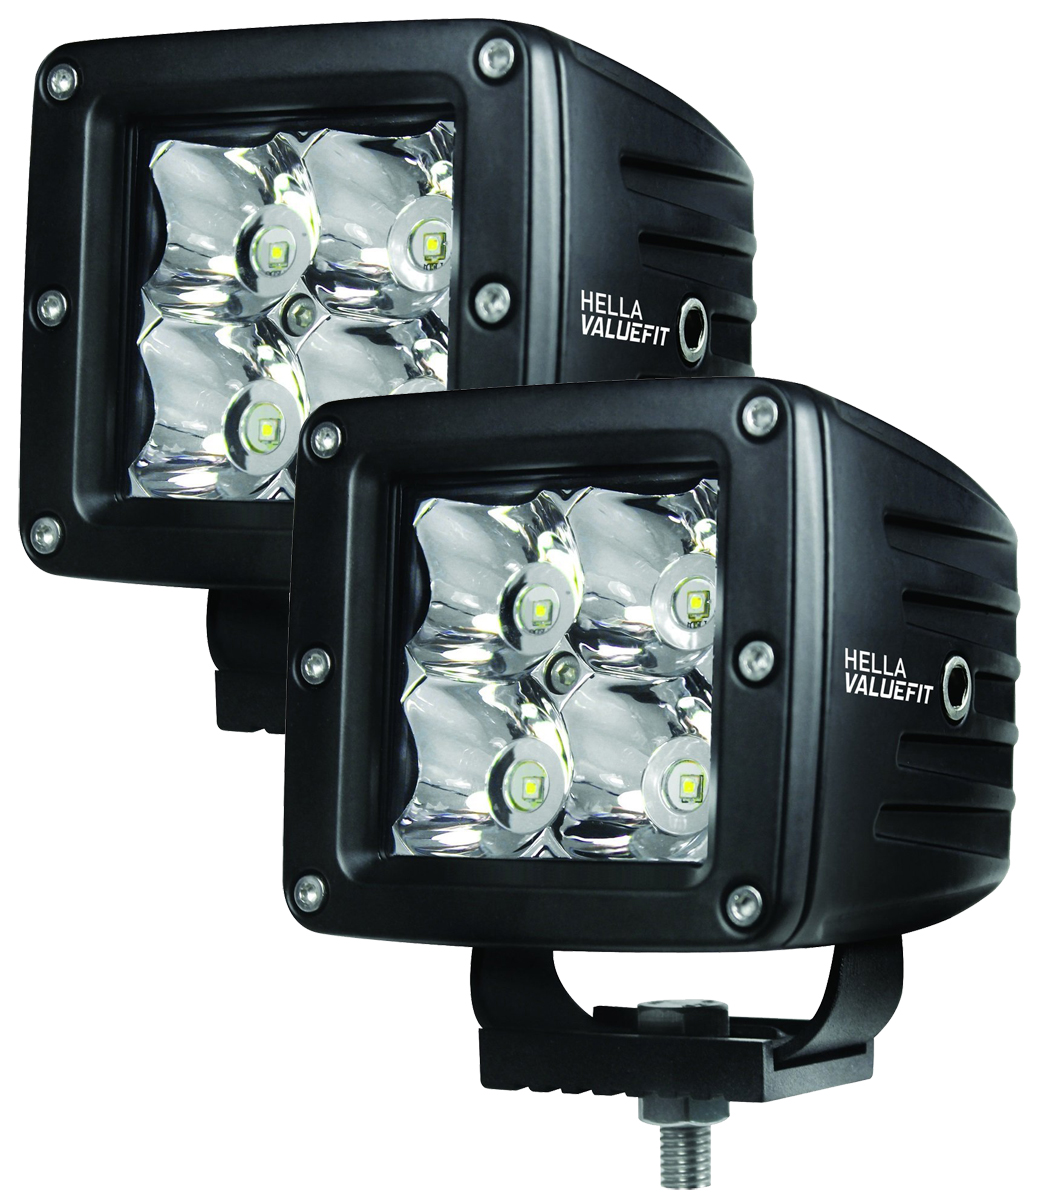 Hella ValueFit Cube 4 LED Spot Lighting Kit